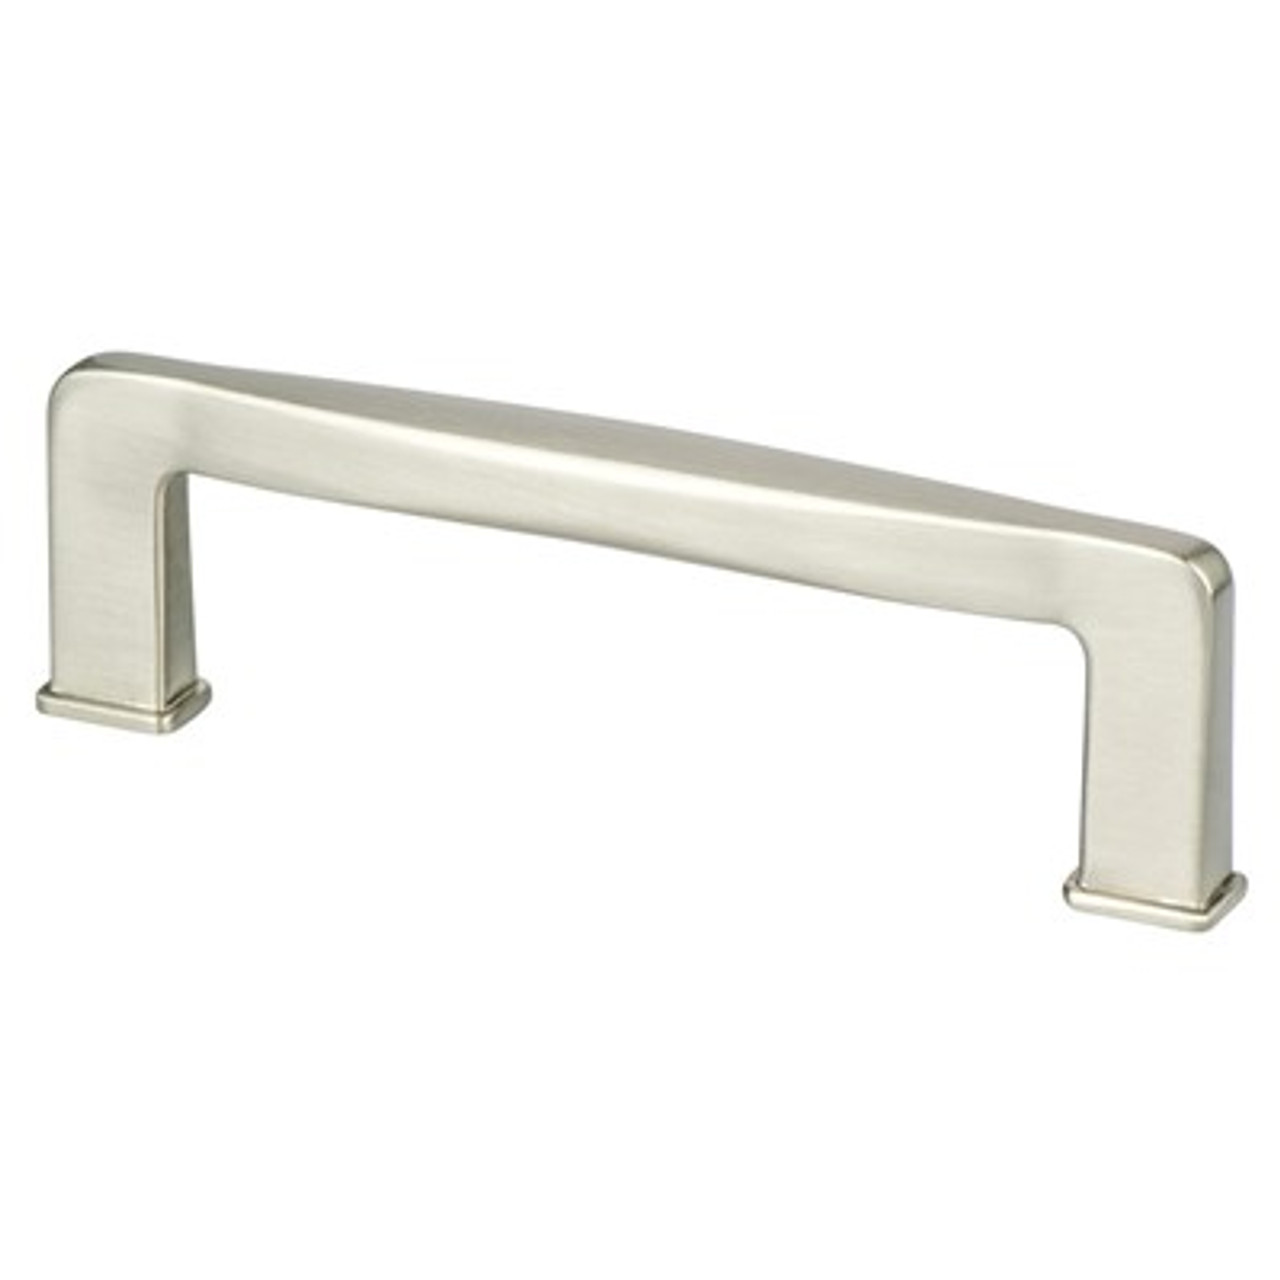 Berenson Harmony Collection 3 Center Cabinet Handle Pull Brushed Nickel